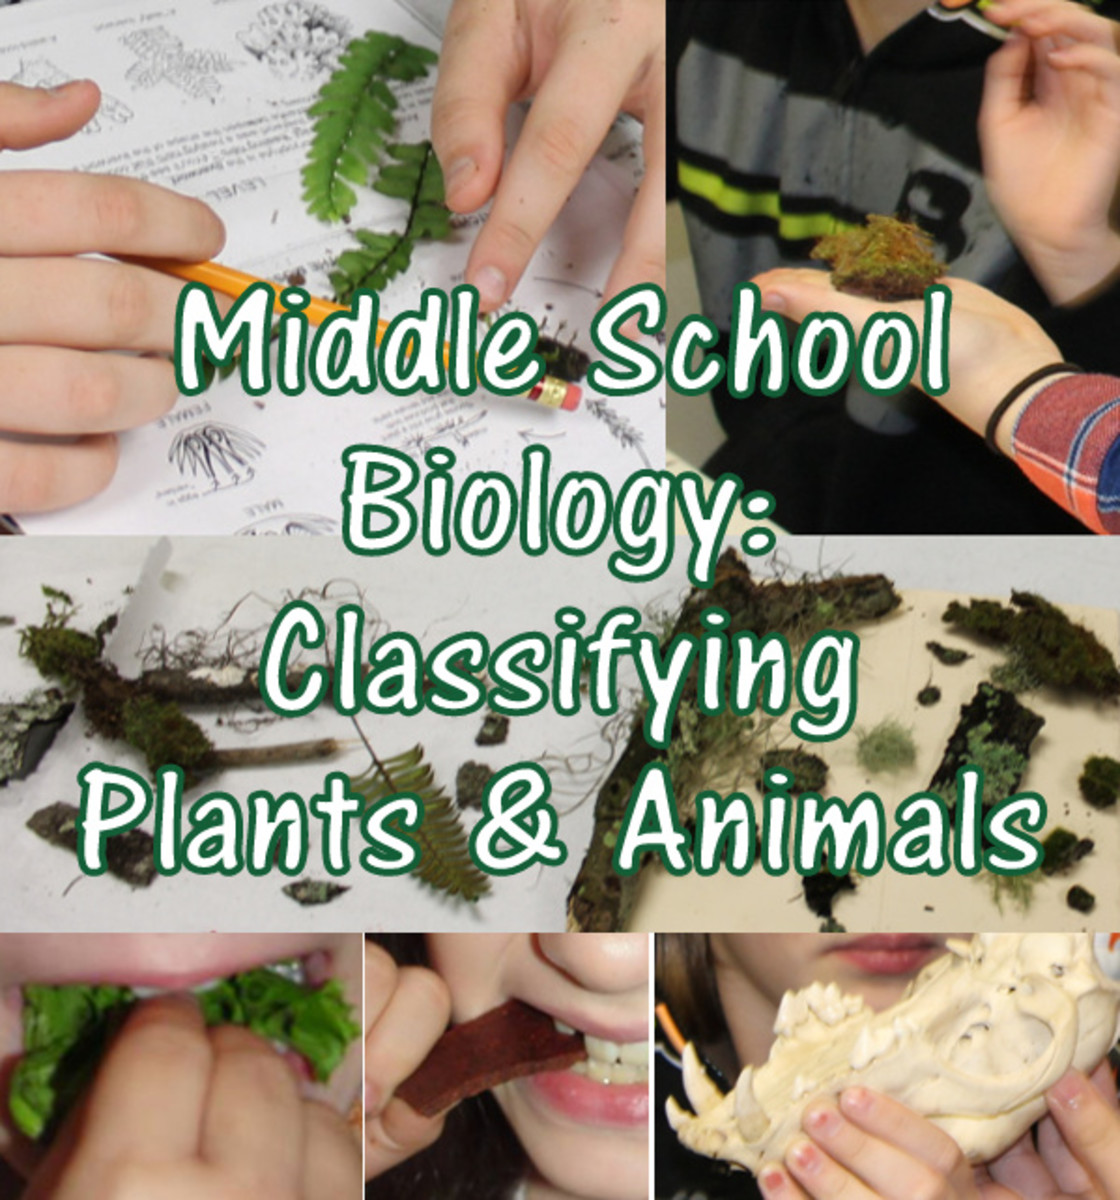 Christian Middle School Biology Lesson: Classifying Plants & Animals